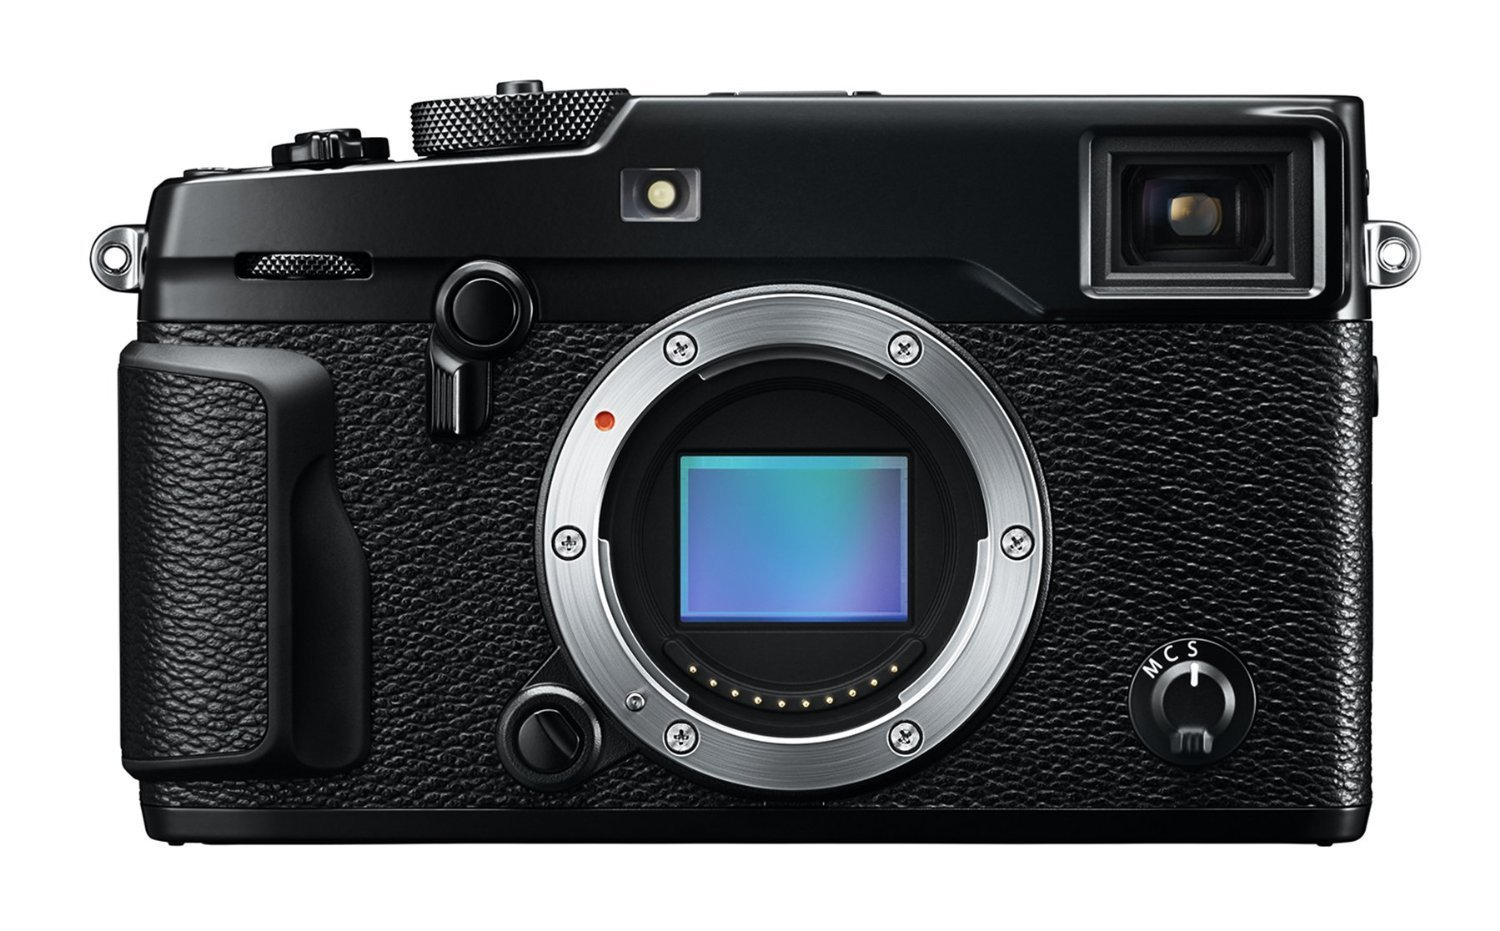 Fujifilm X-Pro2  Photo 2 of 10 in The best cameras of 2016